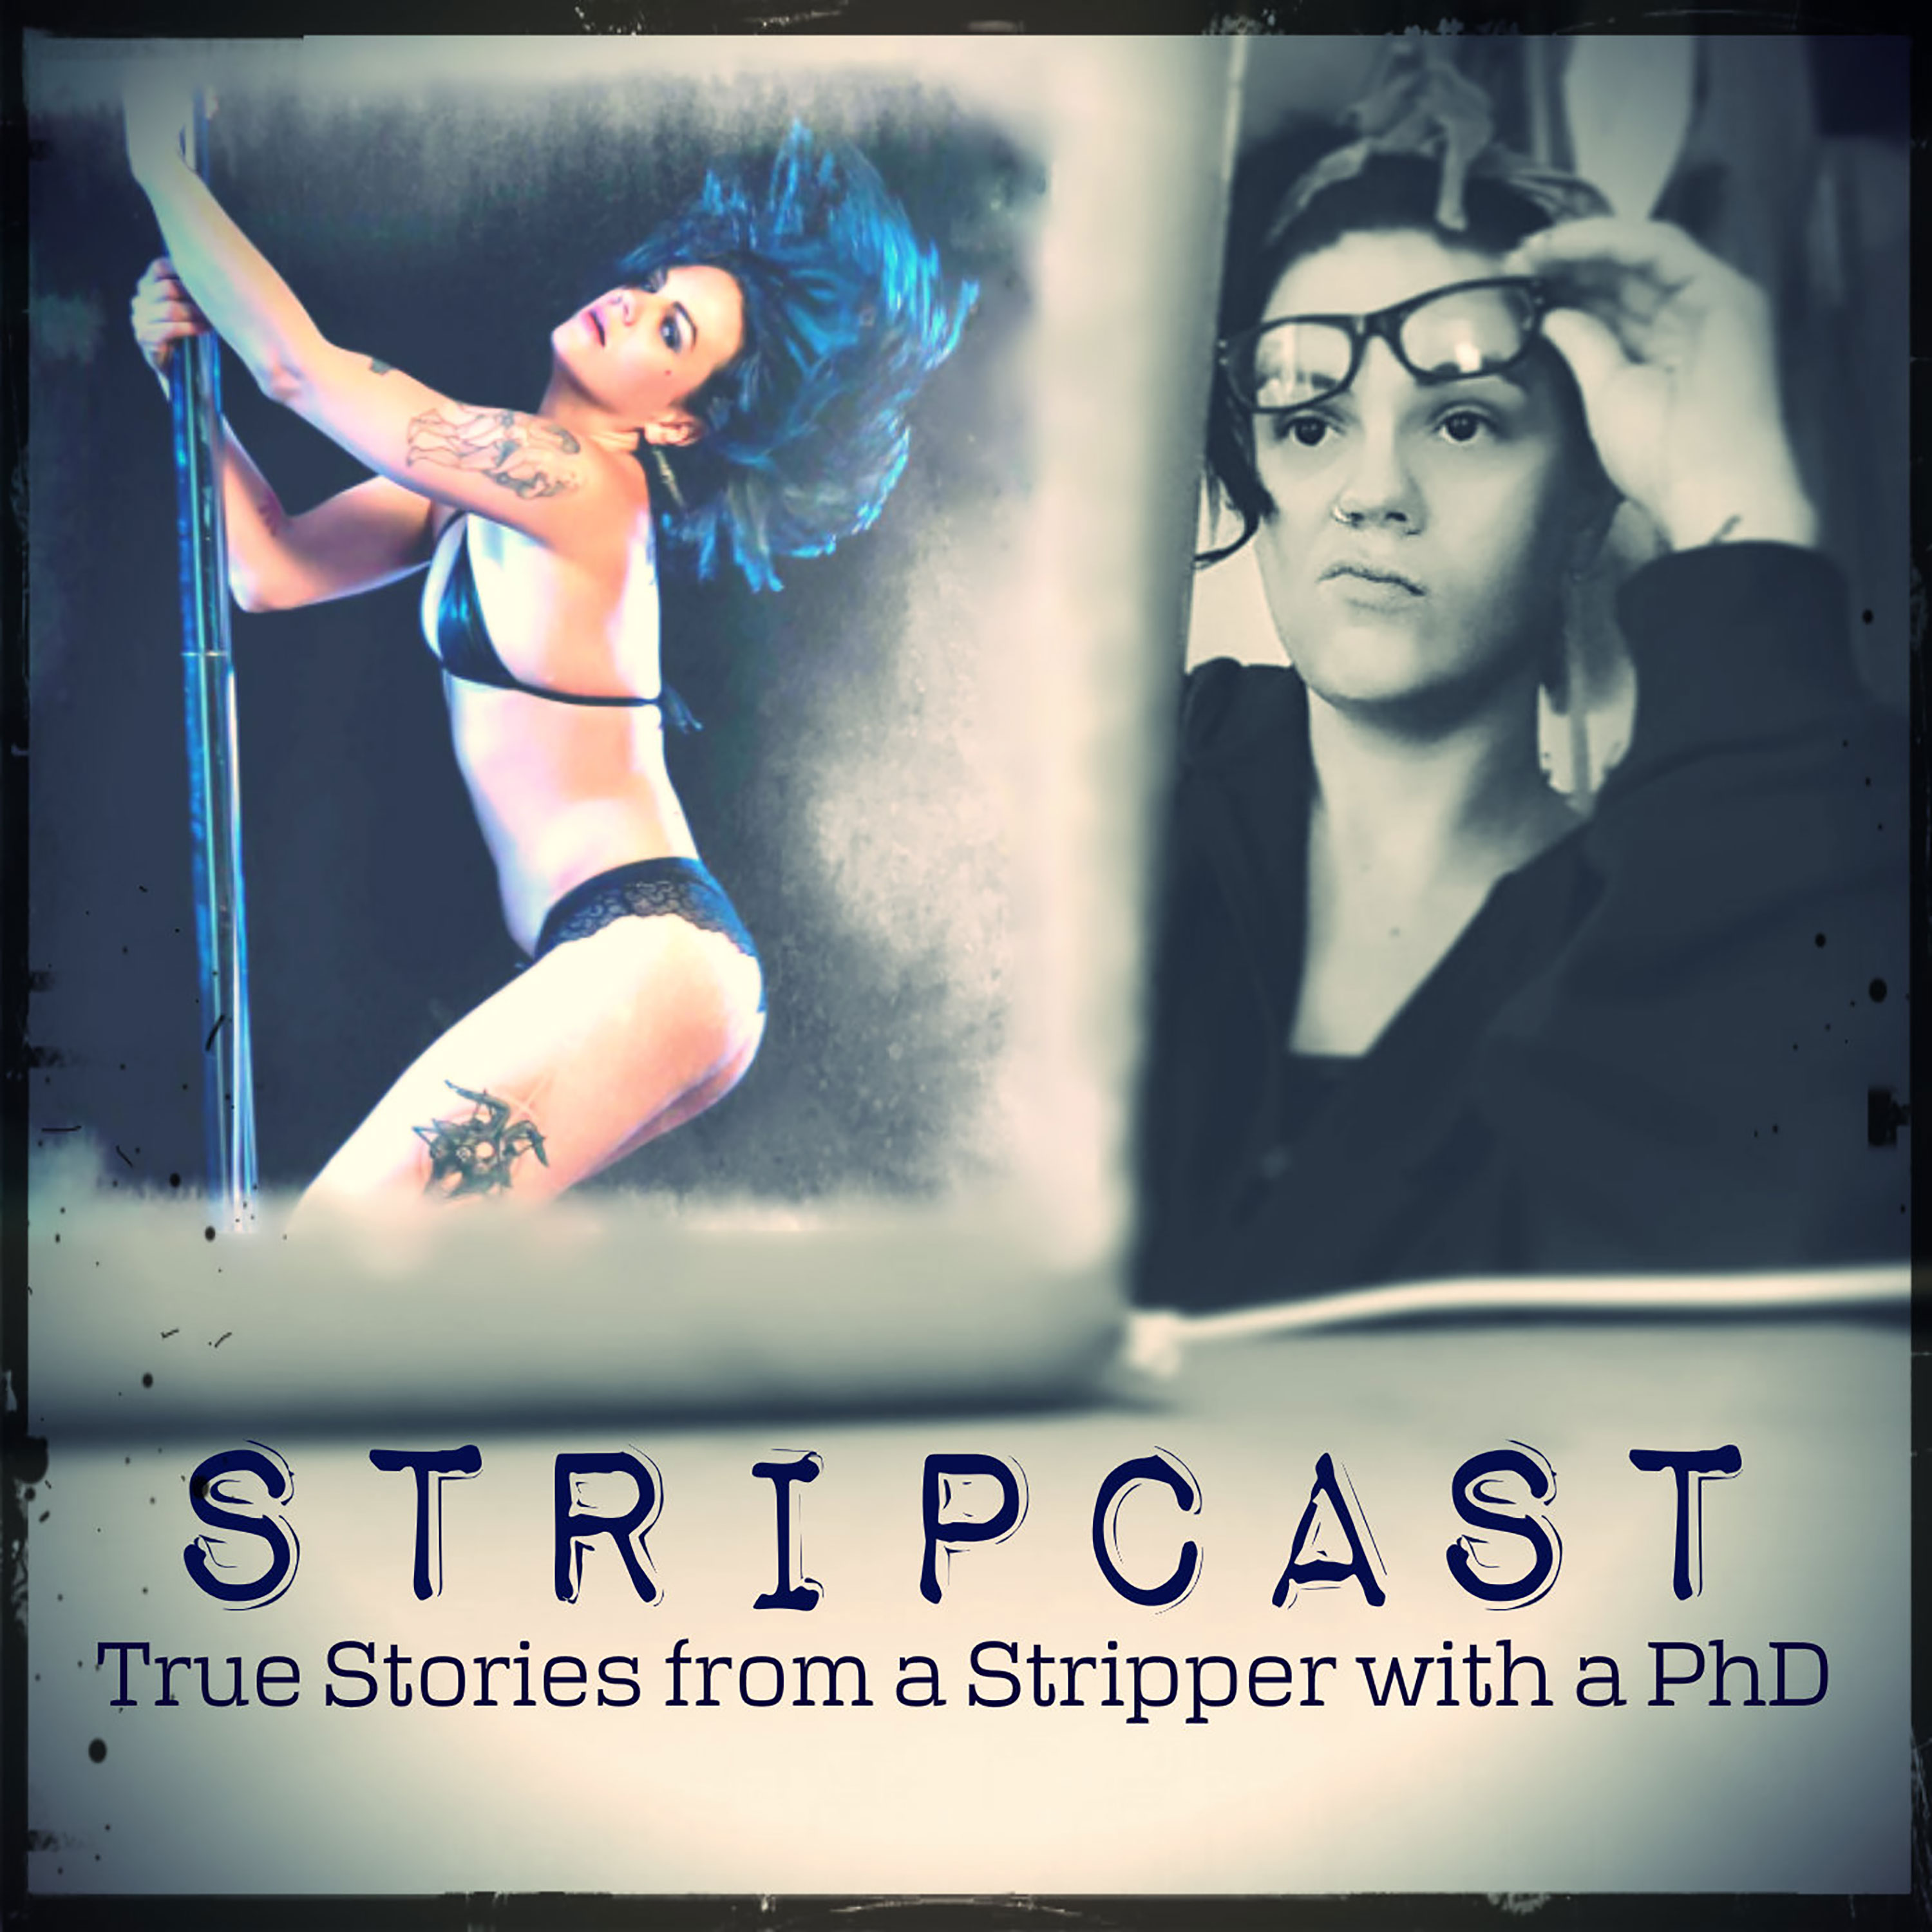 Stripcast: True Stories from a Stripper with a PhD  show art